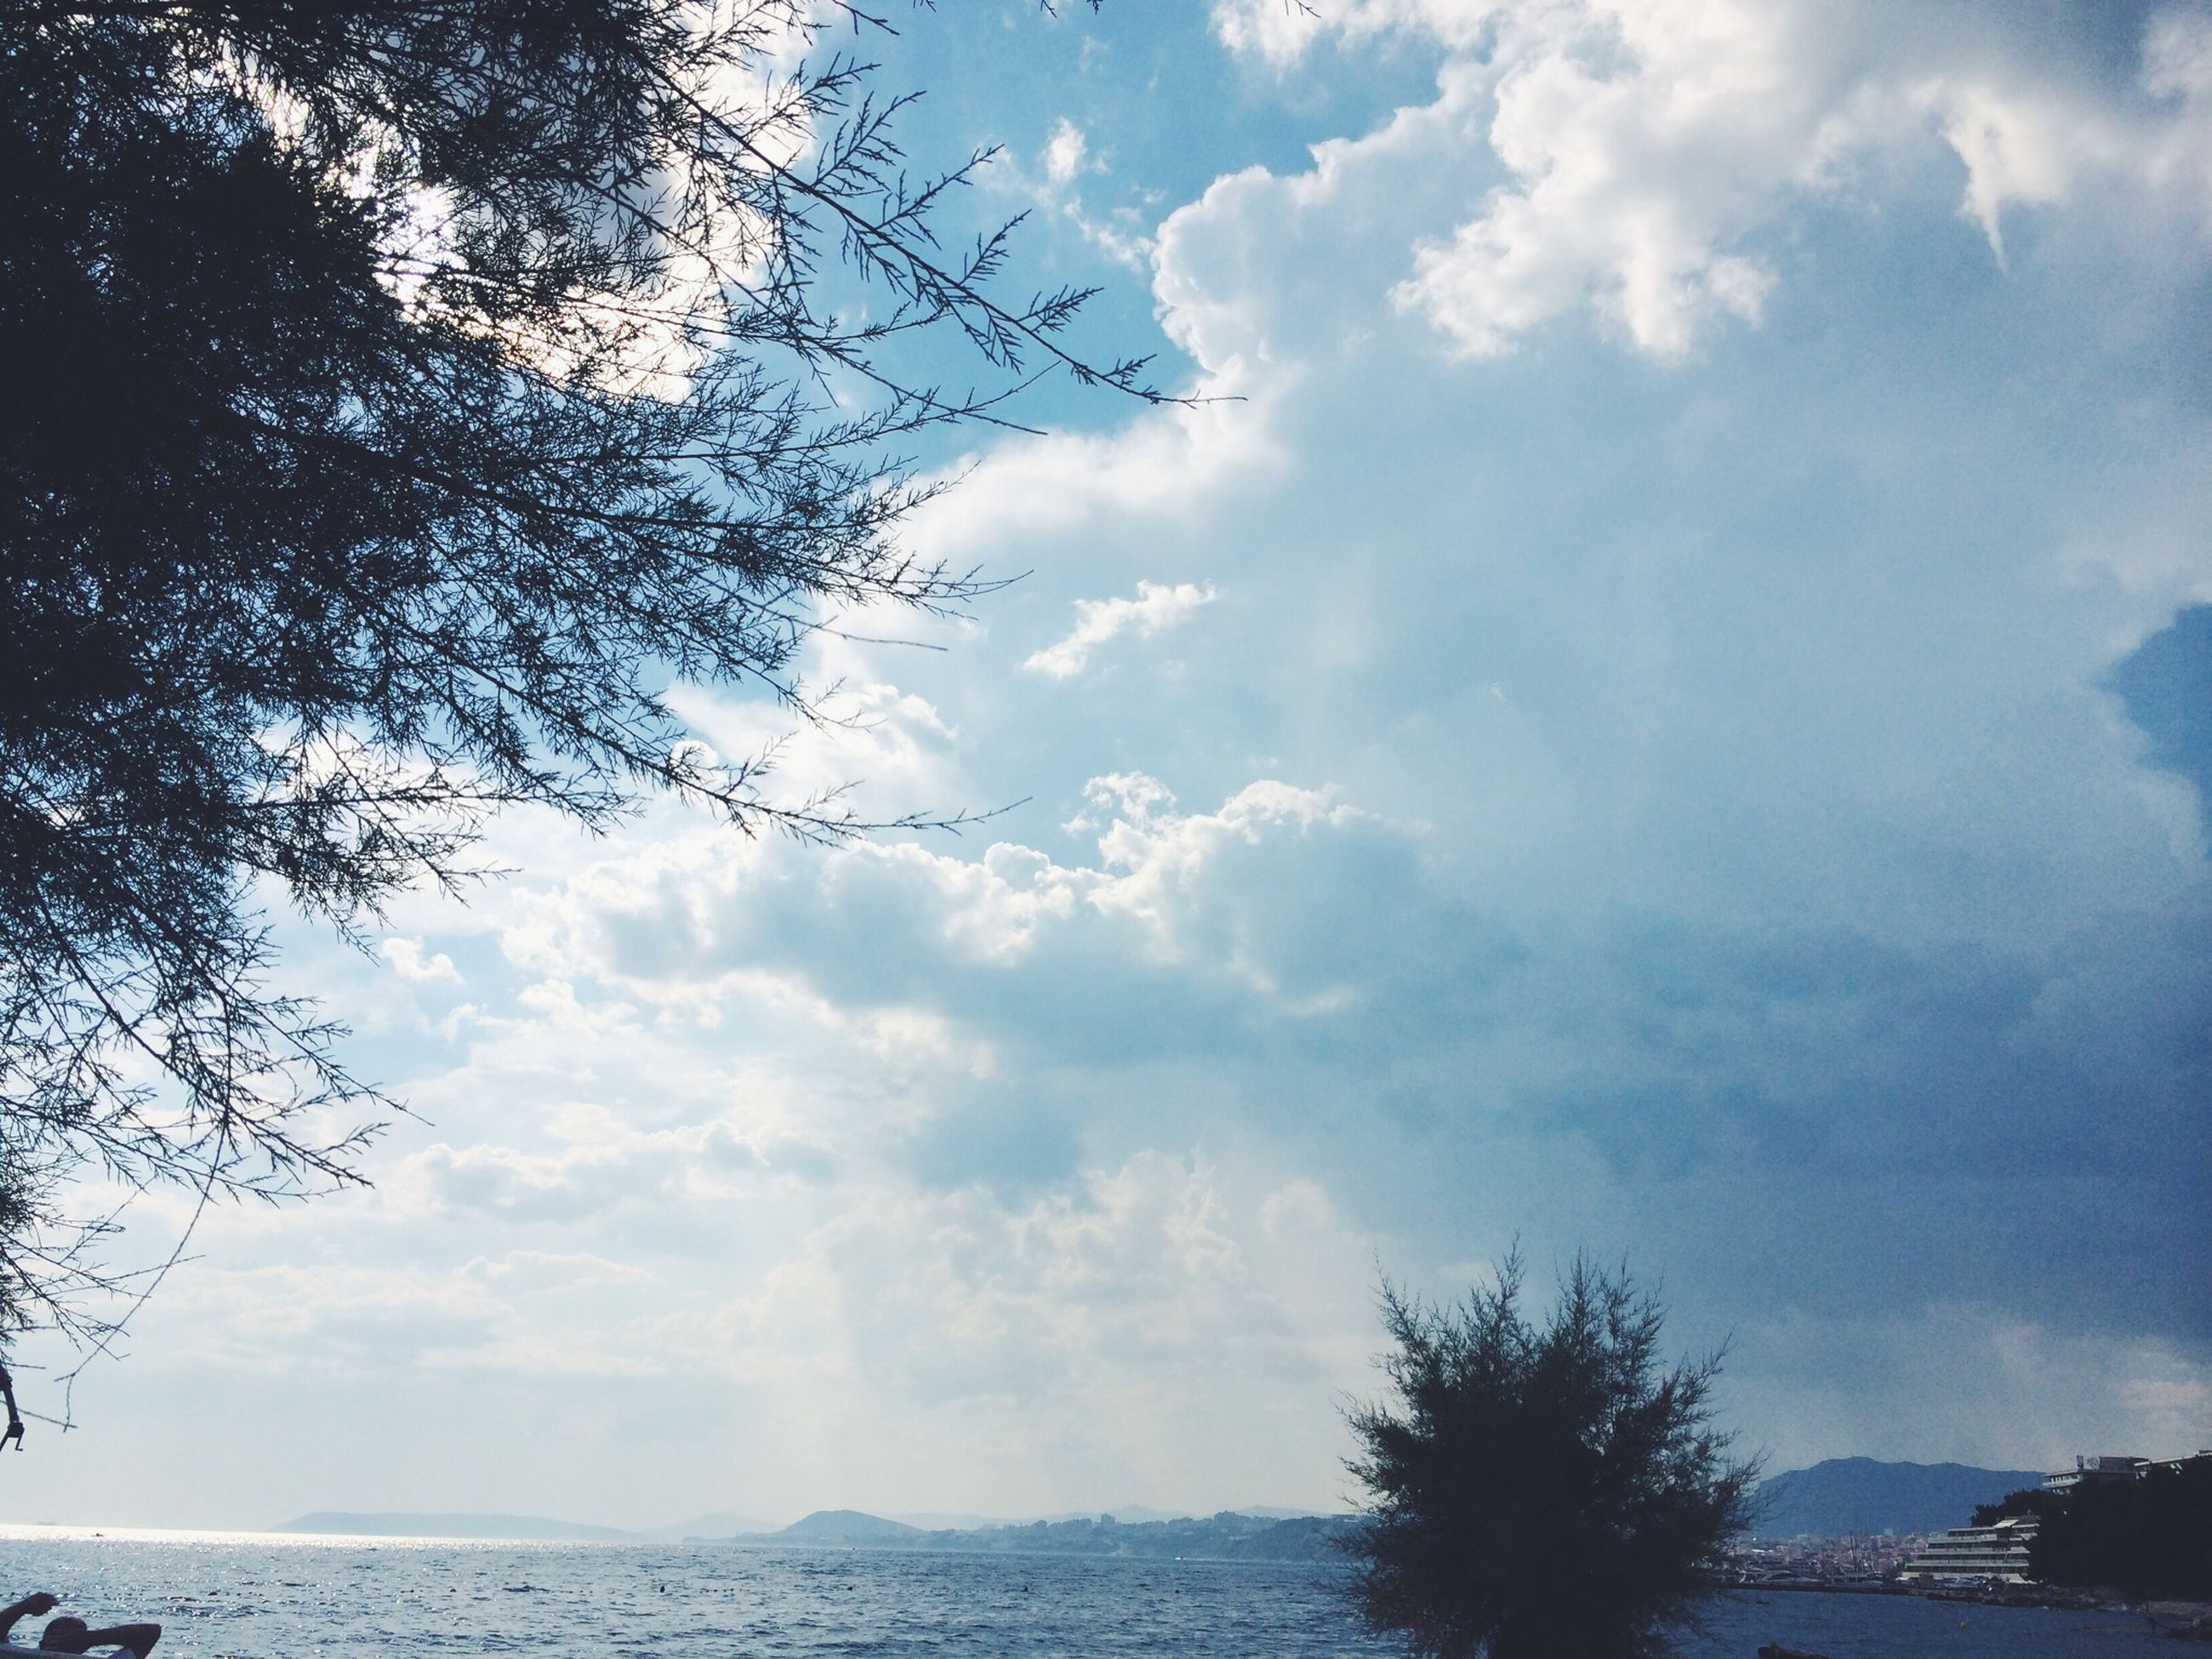 sky, cloud - sky, tree, tranquility, tranquil scene, scenics, cloudy, beauty in nature, water, nature, cloud, sea, weather, branch, idyllic, horizon over water, silhouette, outdoors, waterfront, no people